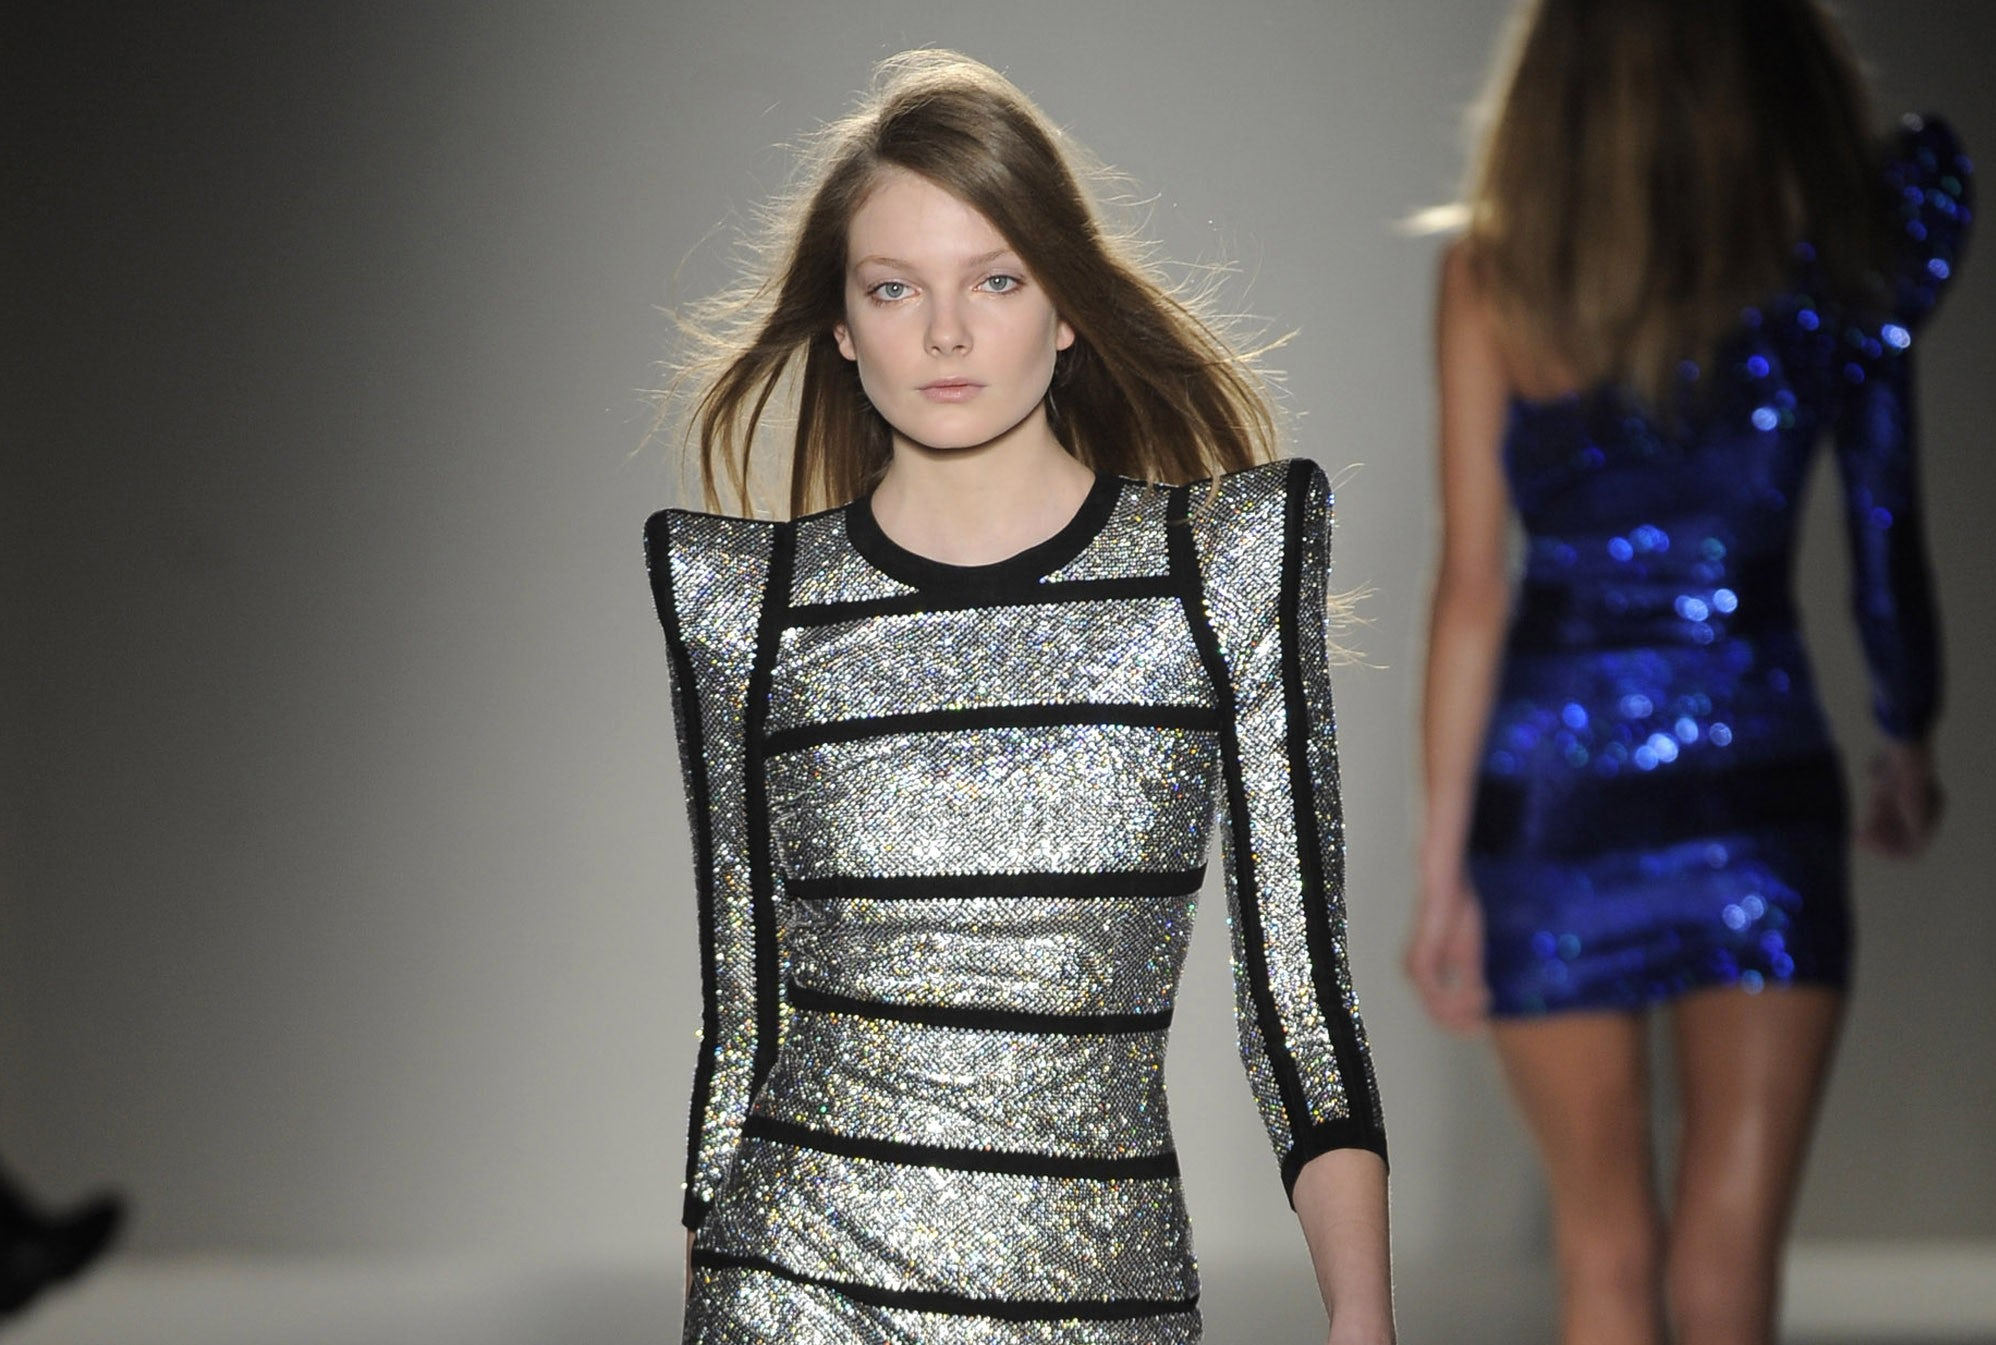 The Balmain Shoulder, courtesy of Coutorture